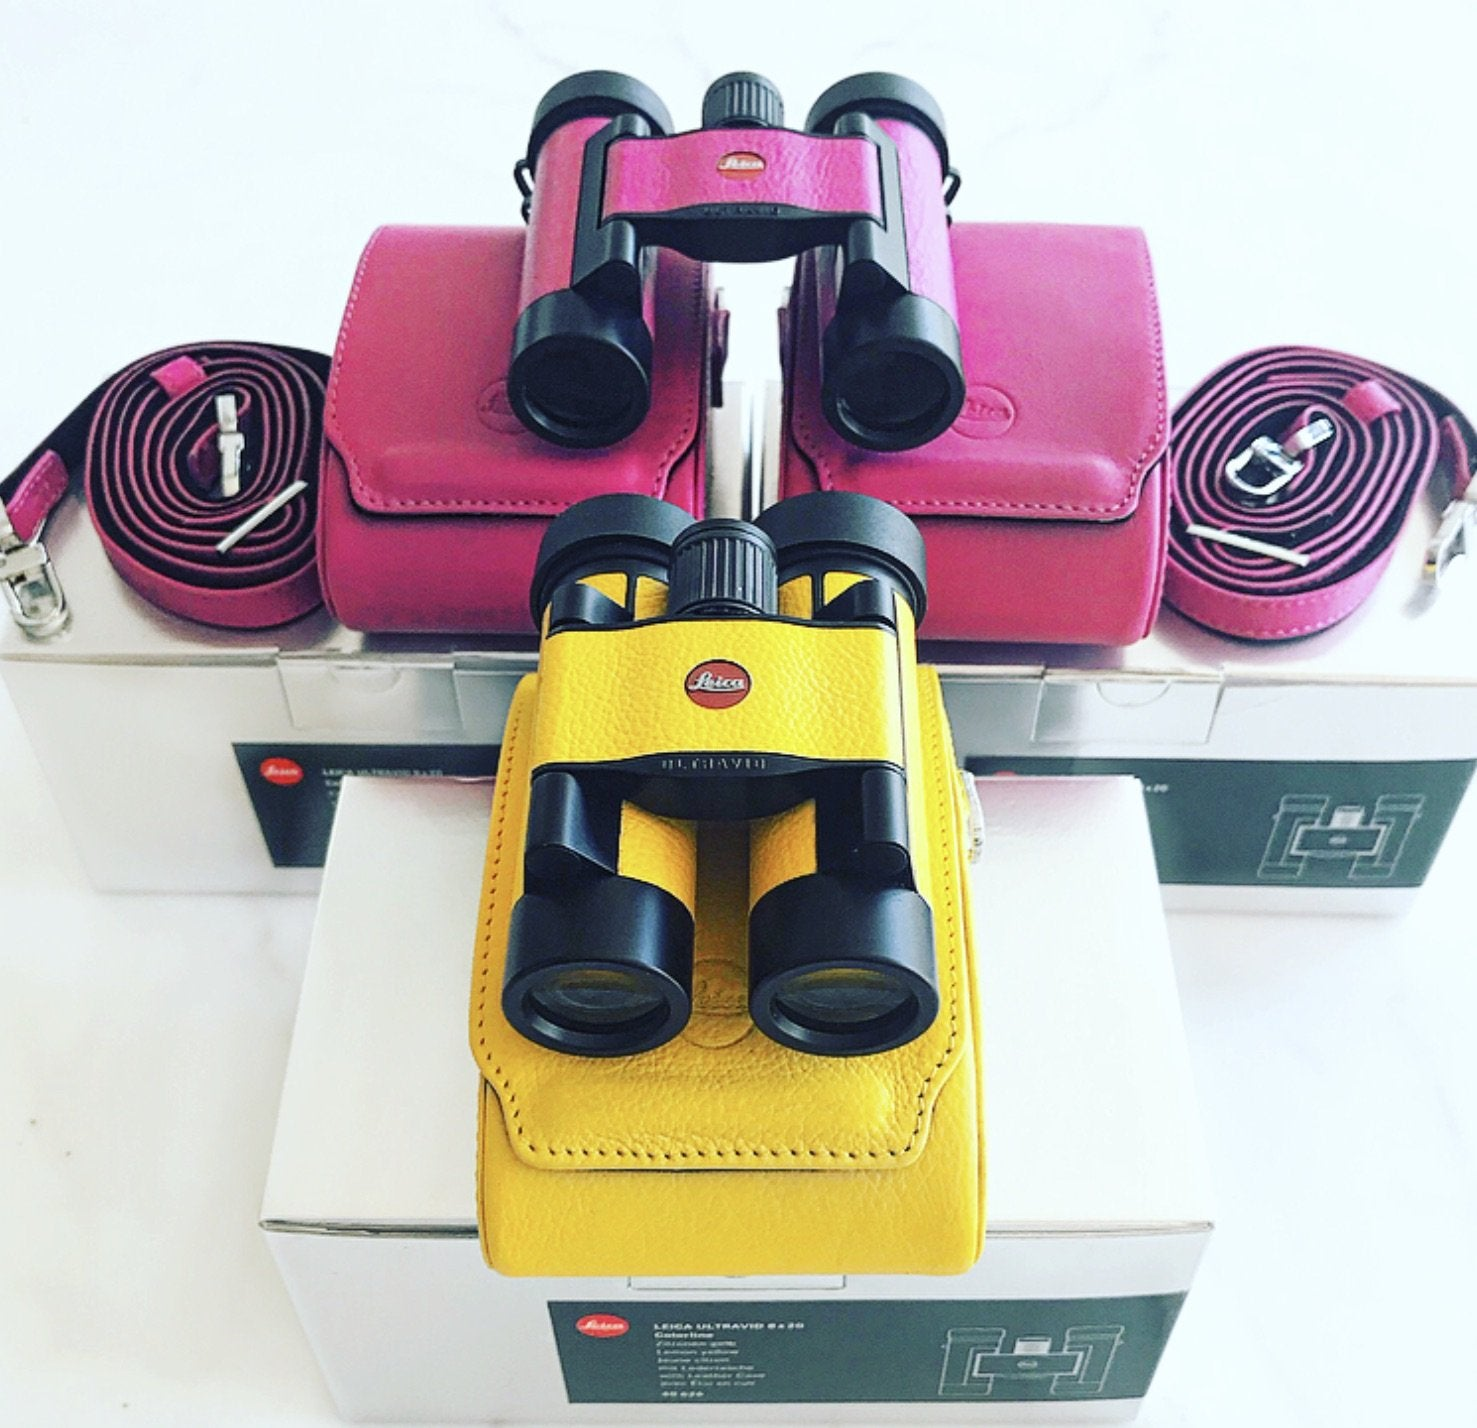 Leica Pink Binoculars. Comes with a pink case and matching color strap.